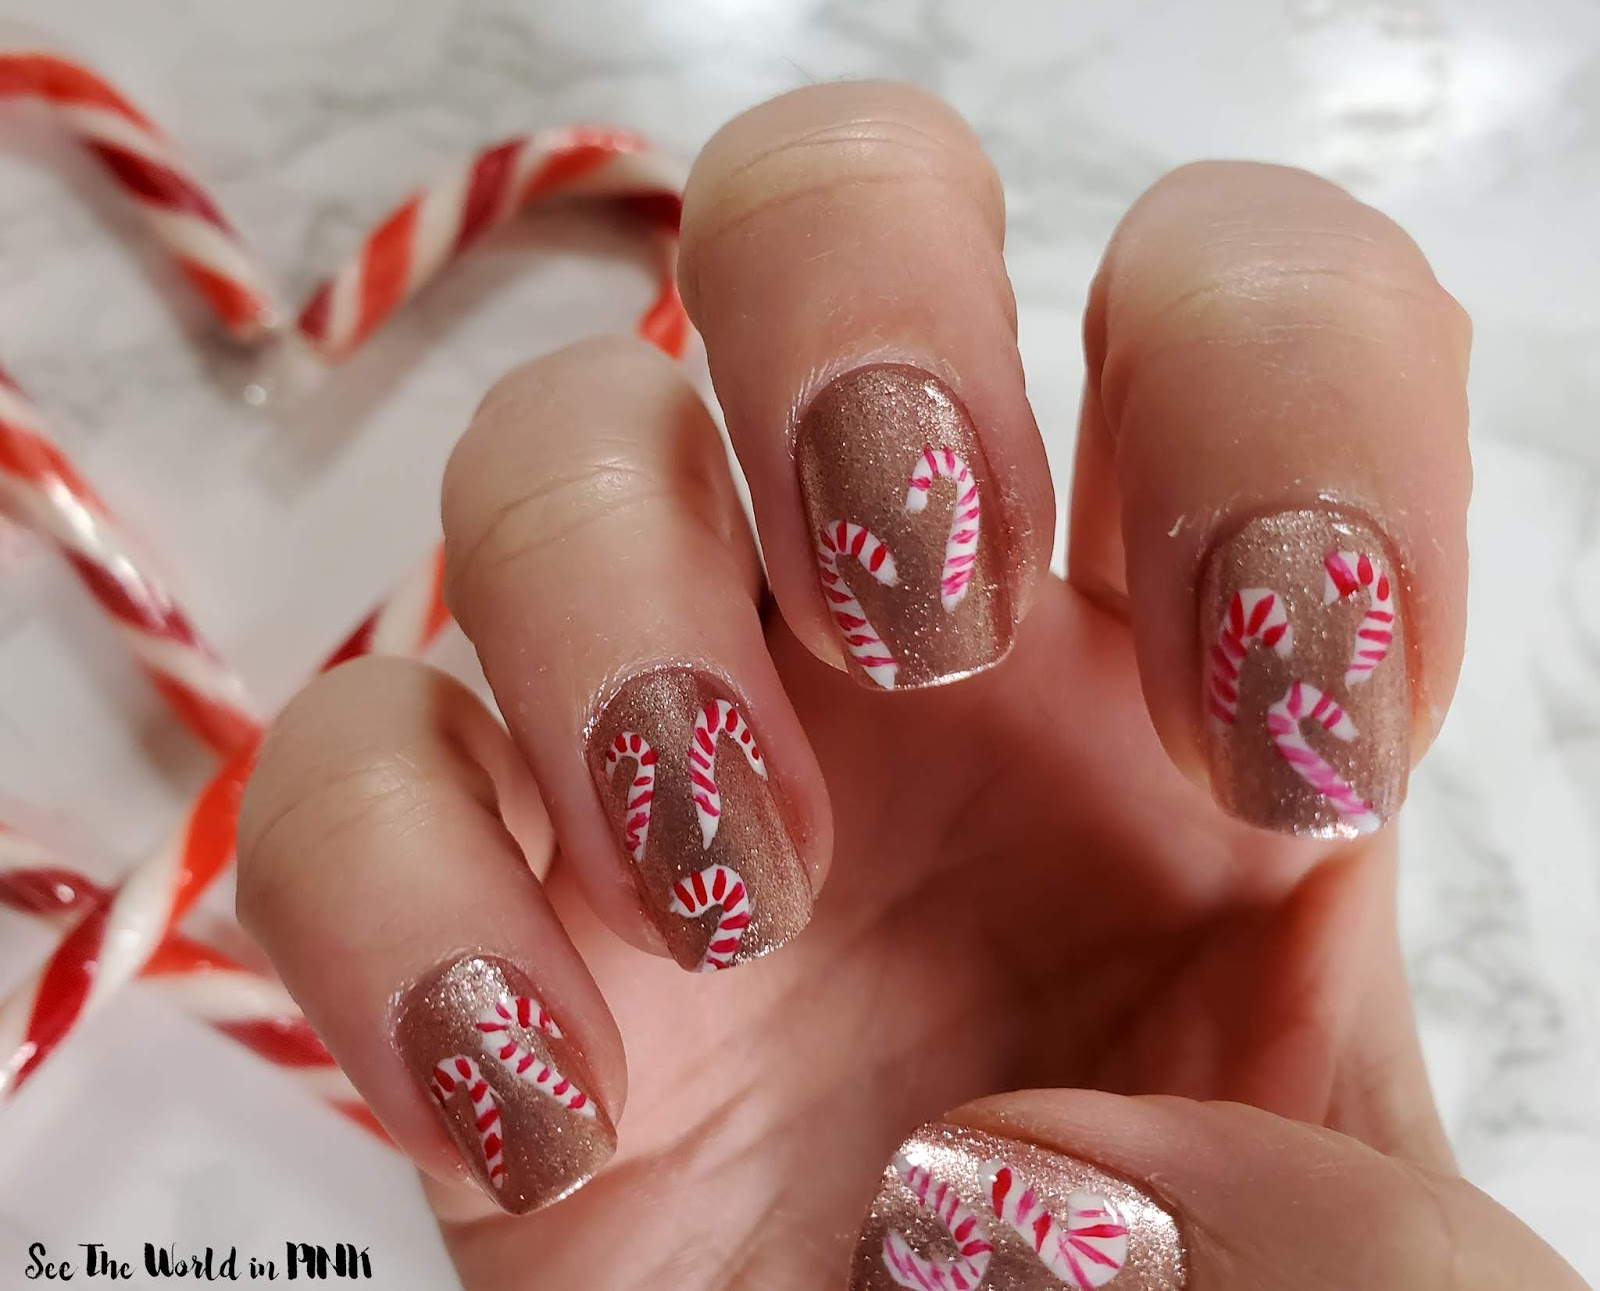 Manicure Monday - Mini Candy Cane Nail Art